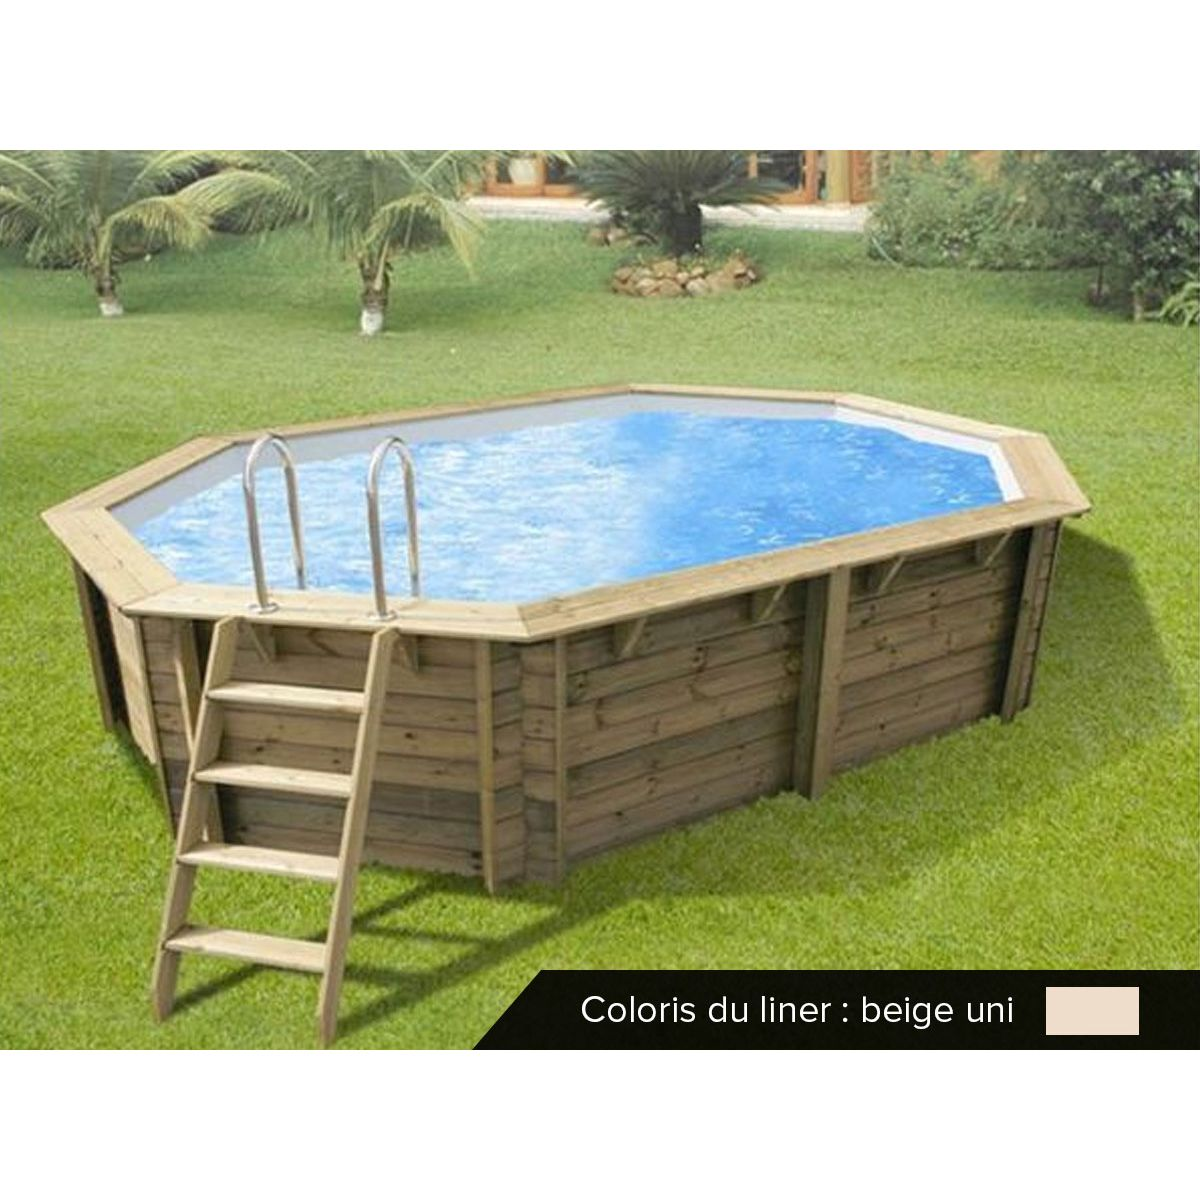 Piscine Bois Sunwater 4 90 X 3 00 X 1 20 Outdoor Furniture Sets